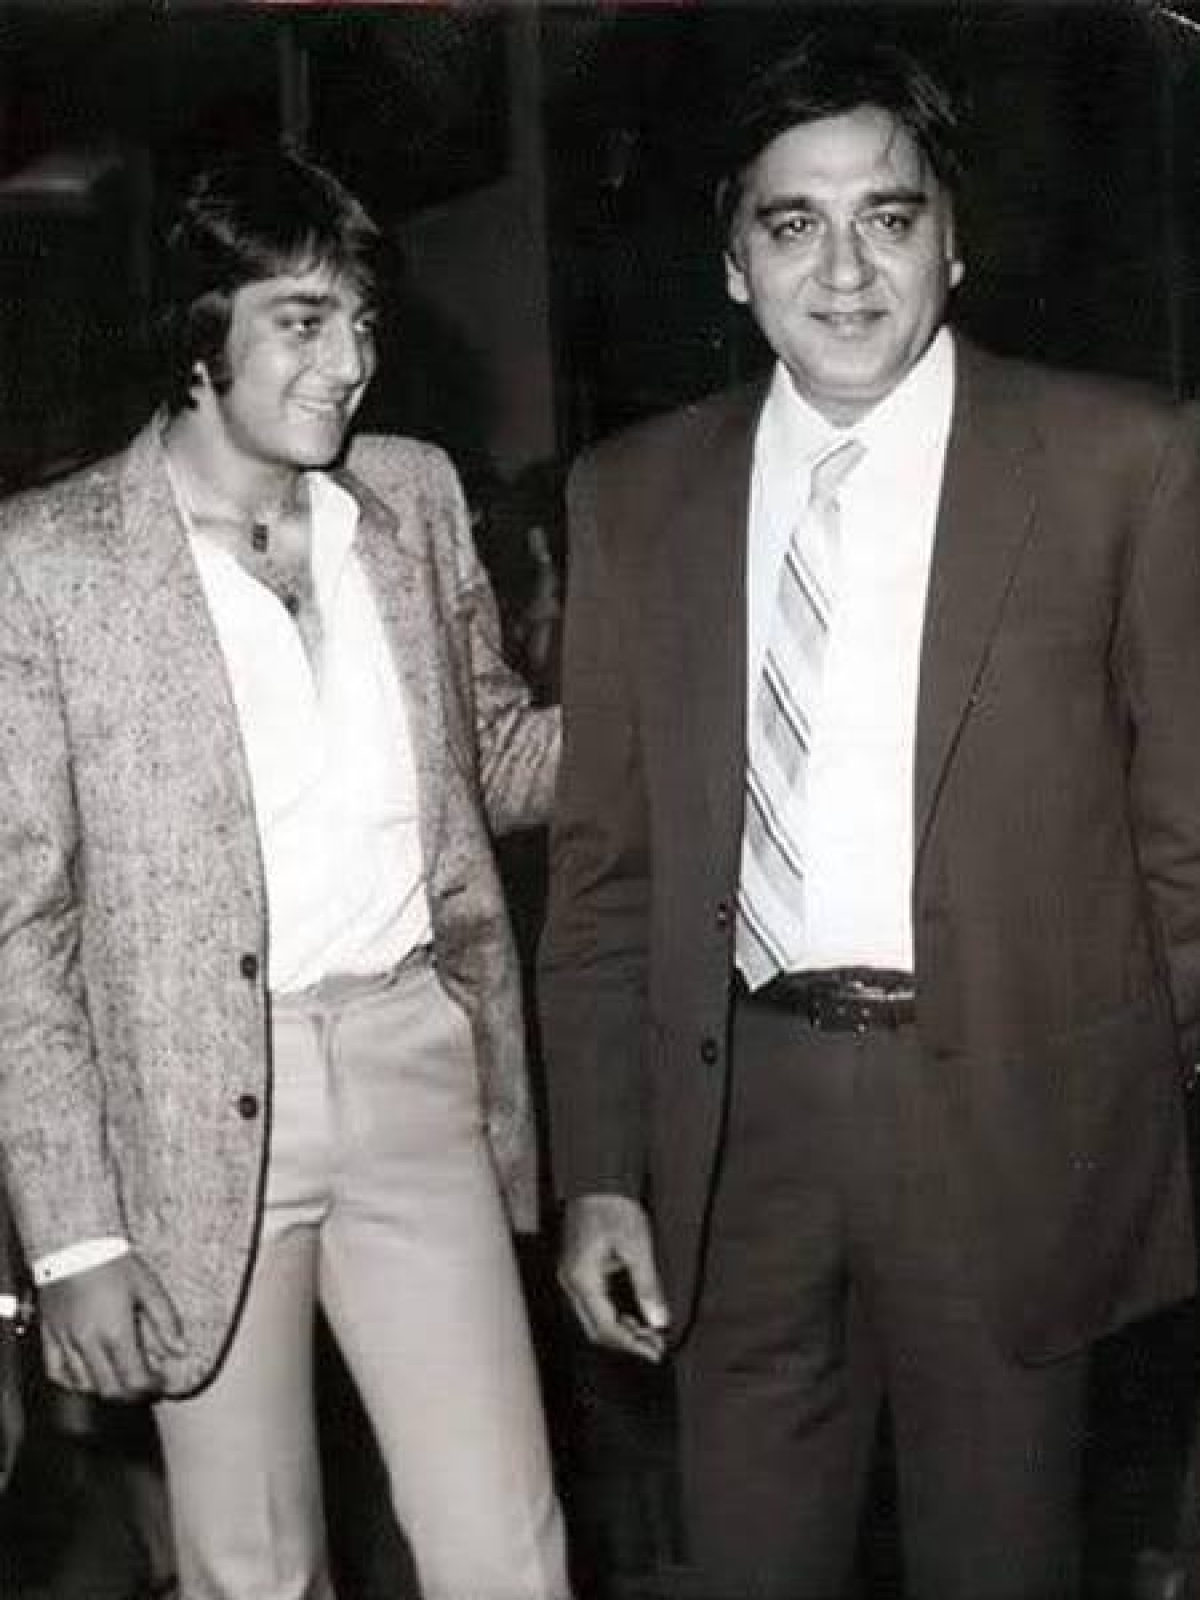 Sanjay with Sunil Dutt at an event.